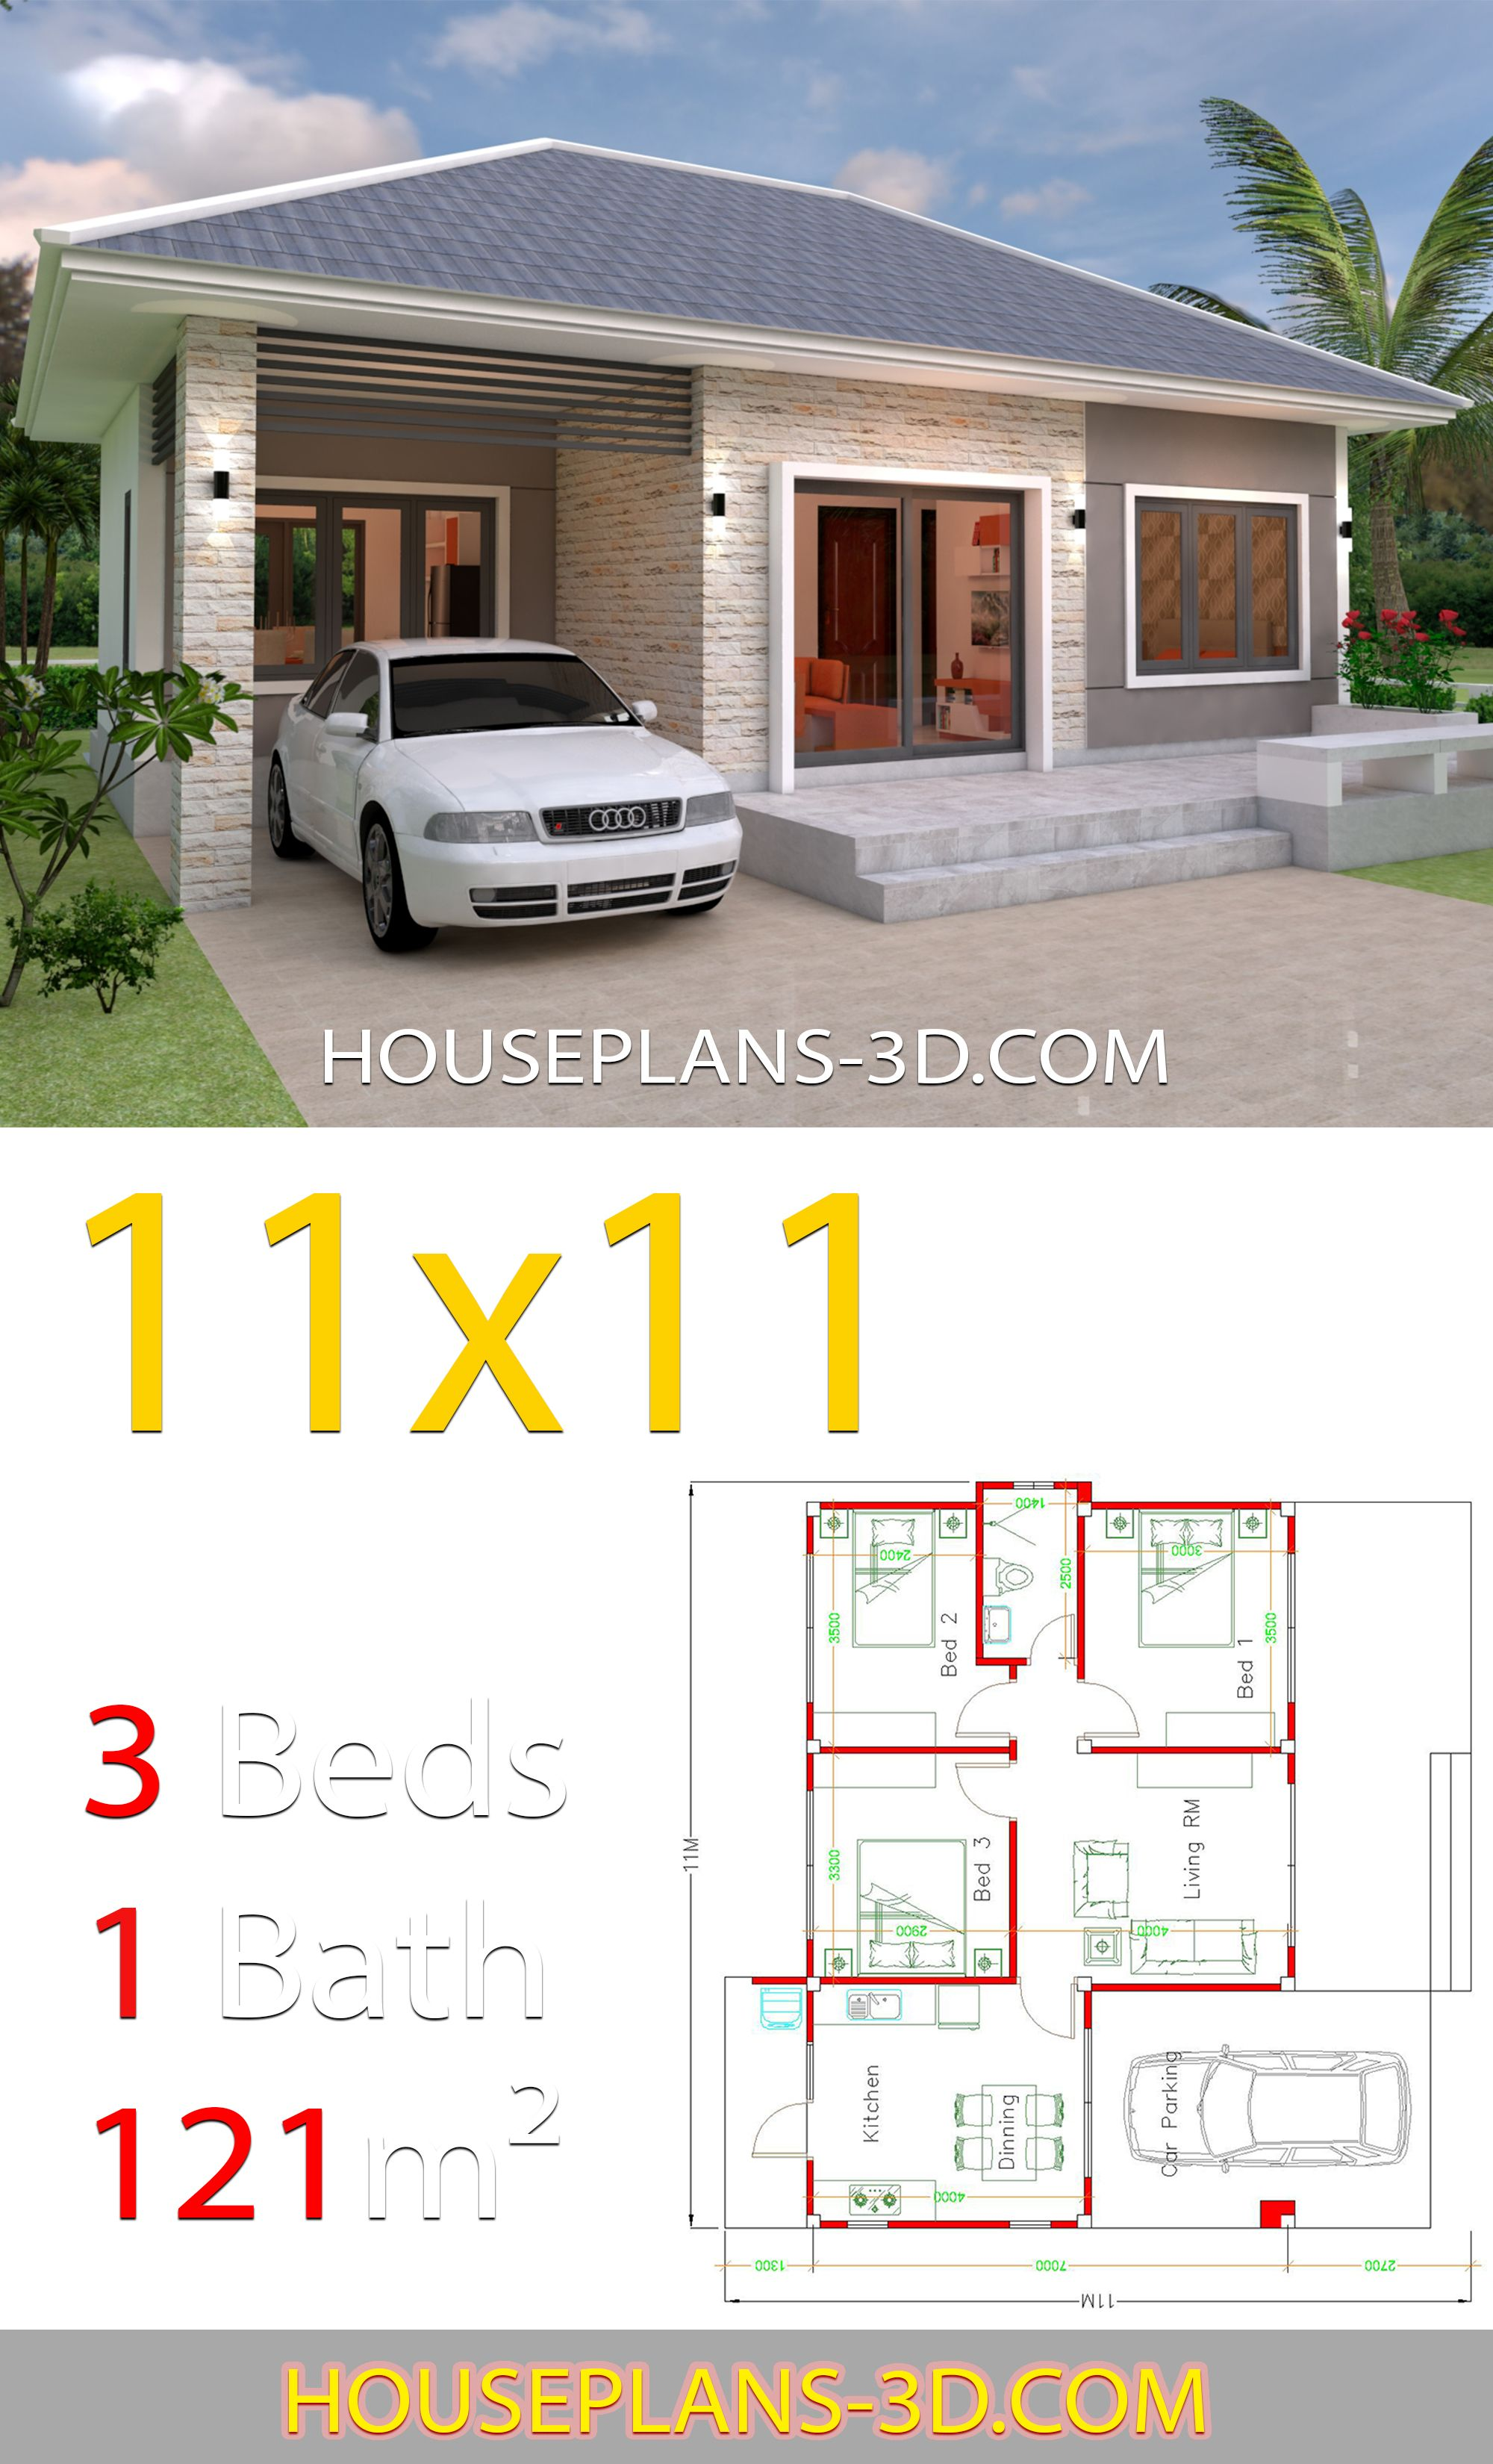 House Design 11x11 With 3 Bedrooms Hip Roof House Plans 3d Simple House Design Affordable House Plans House Plans